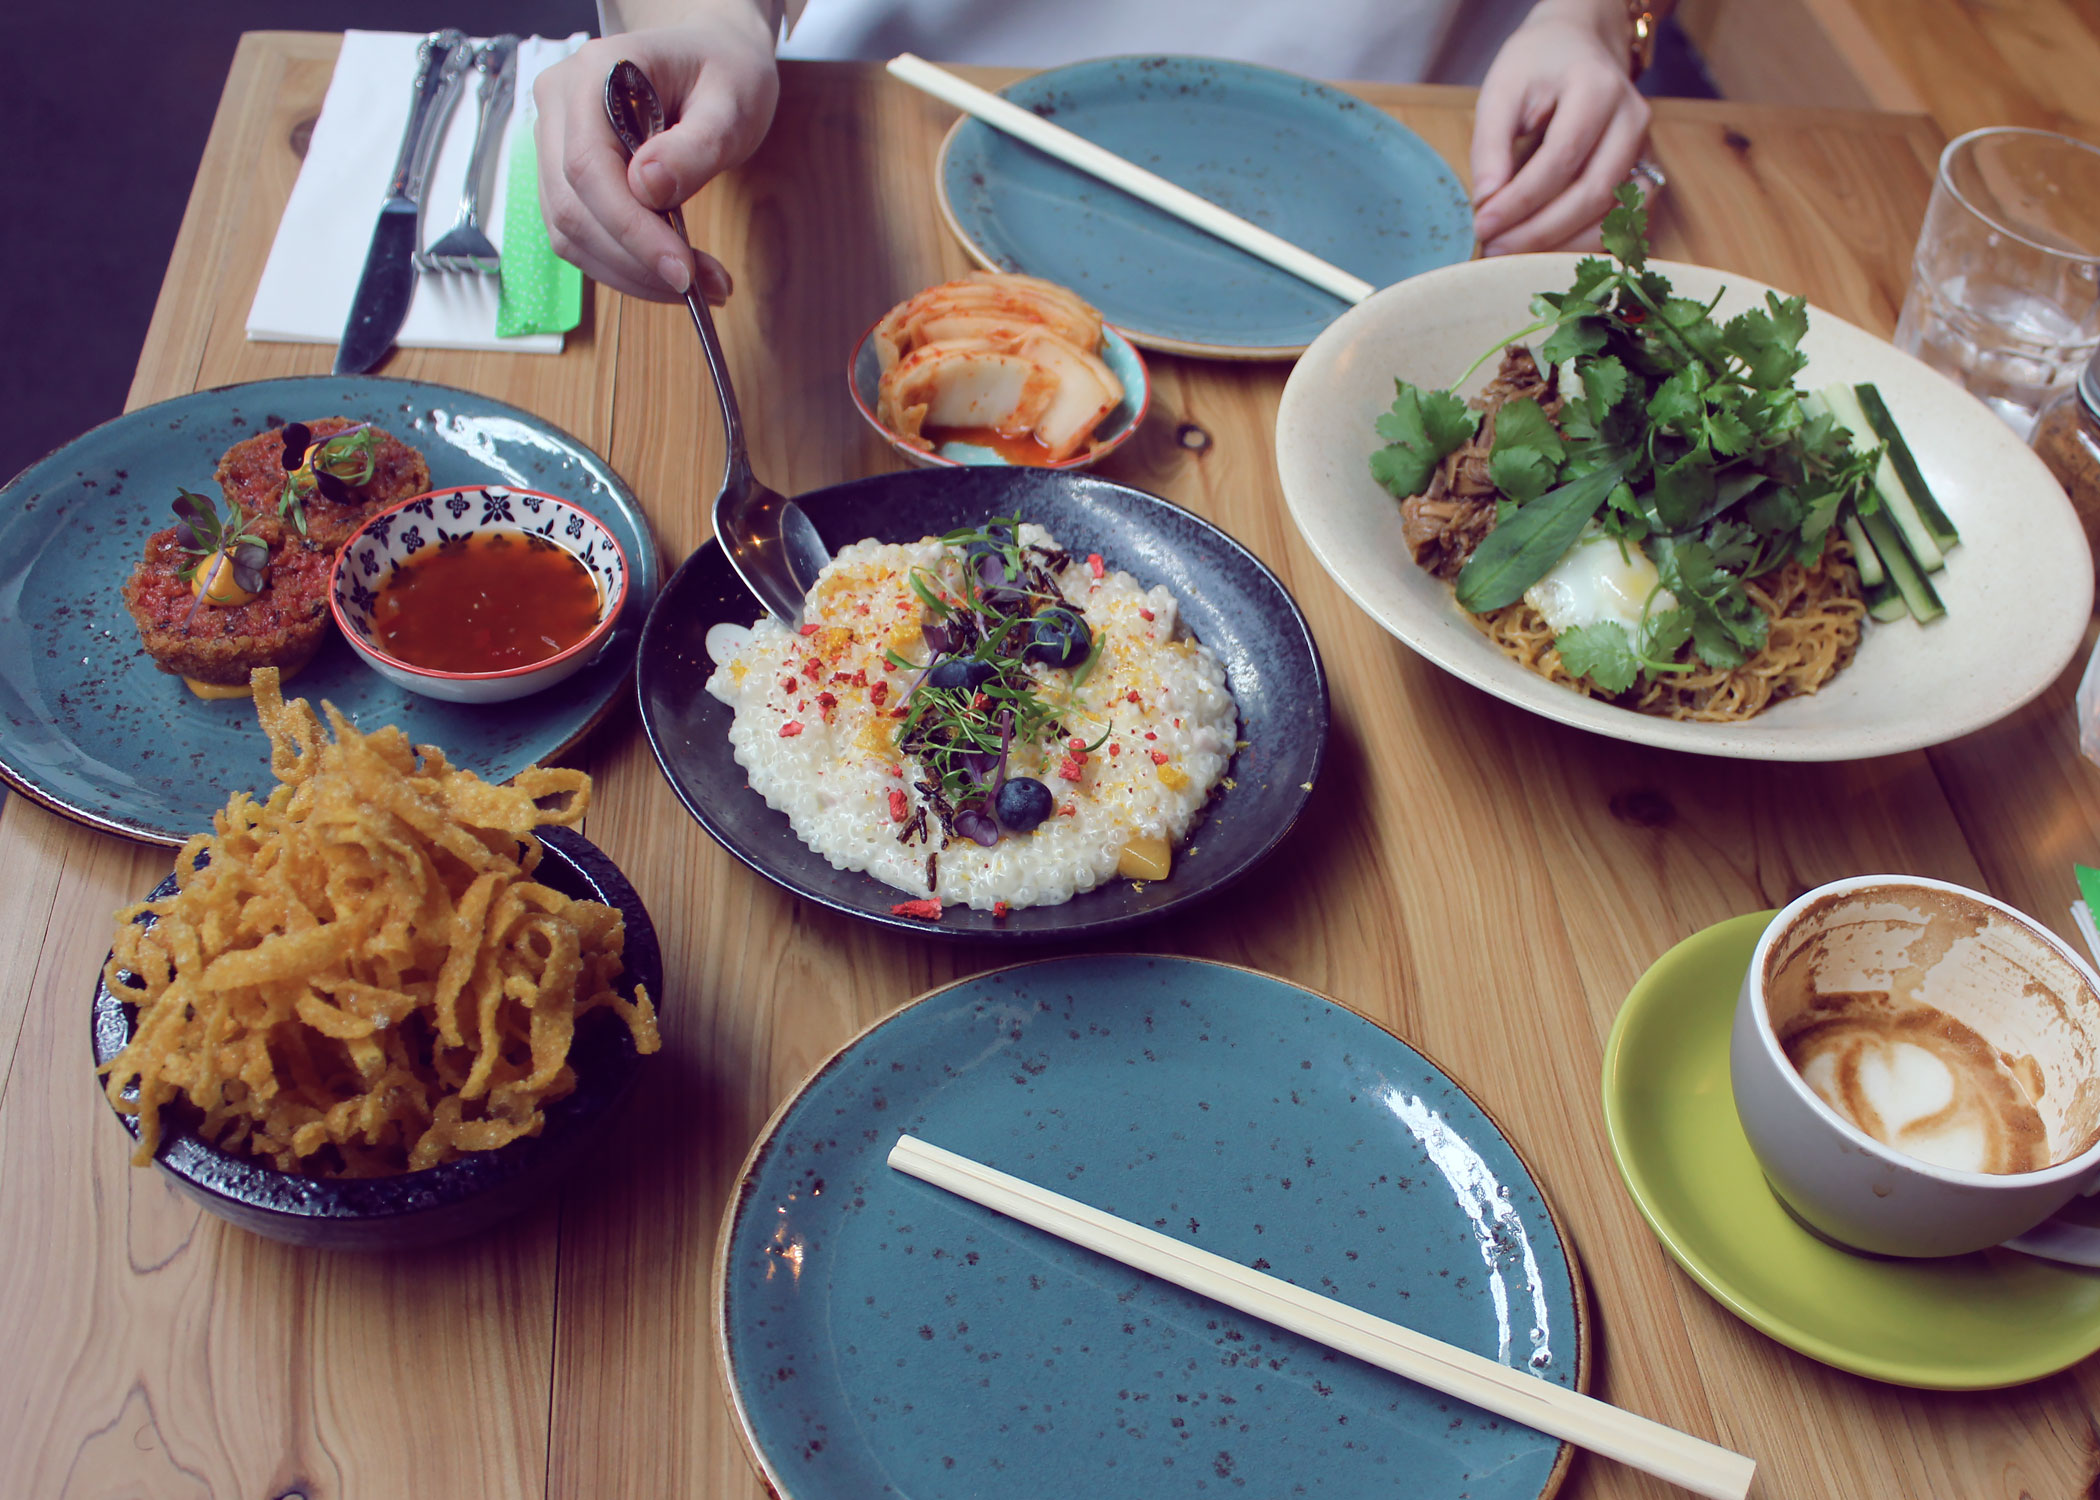 Wonton fries, Lup Cheong & Beetroot arancini, Master stock shredded duck egg noodles with kimchi and warm sago pudding